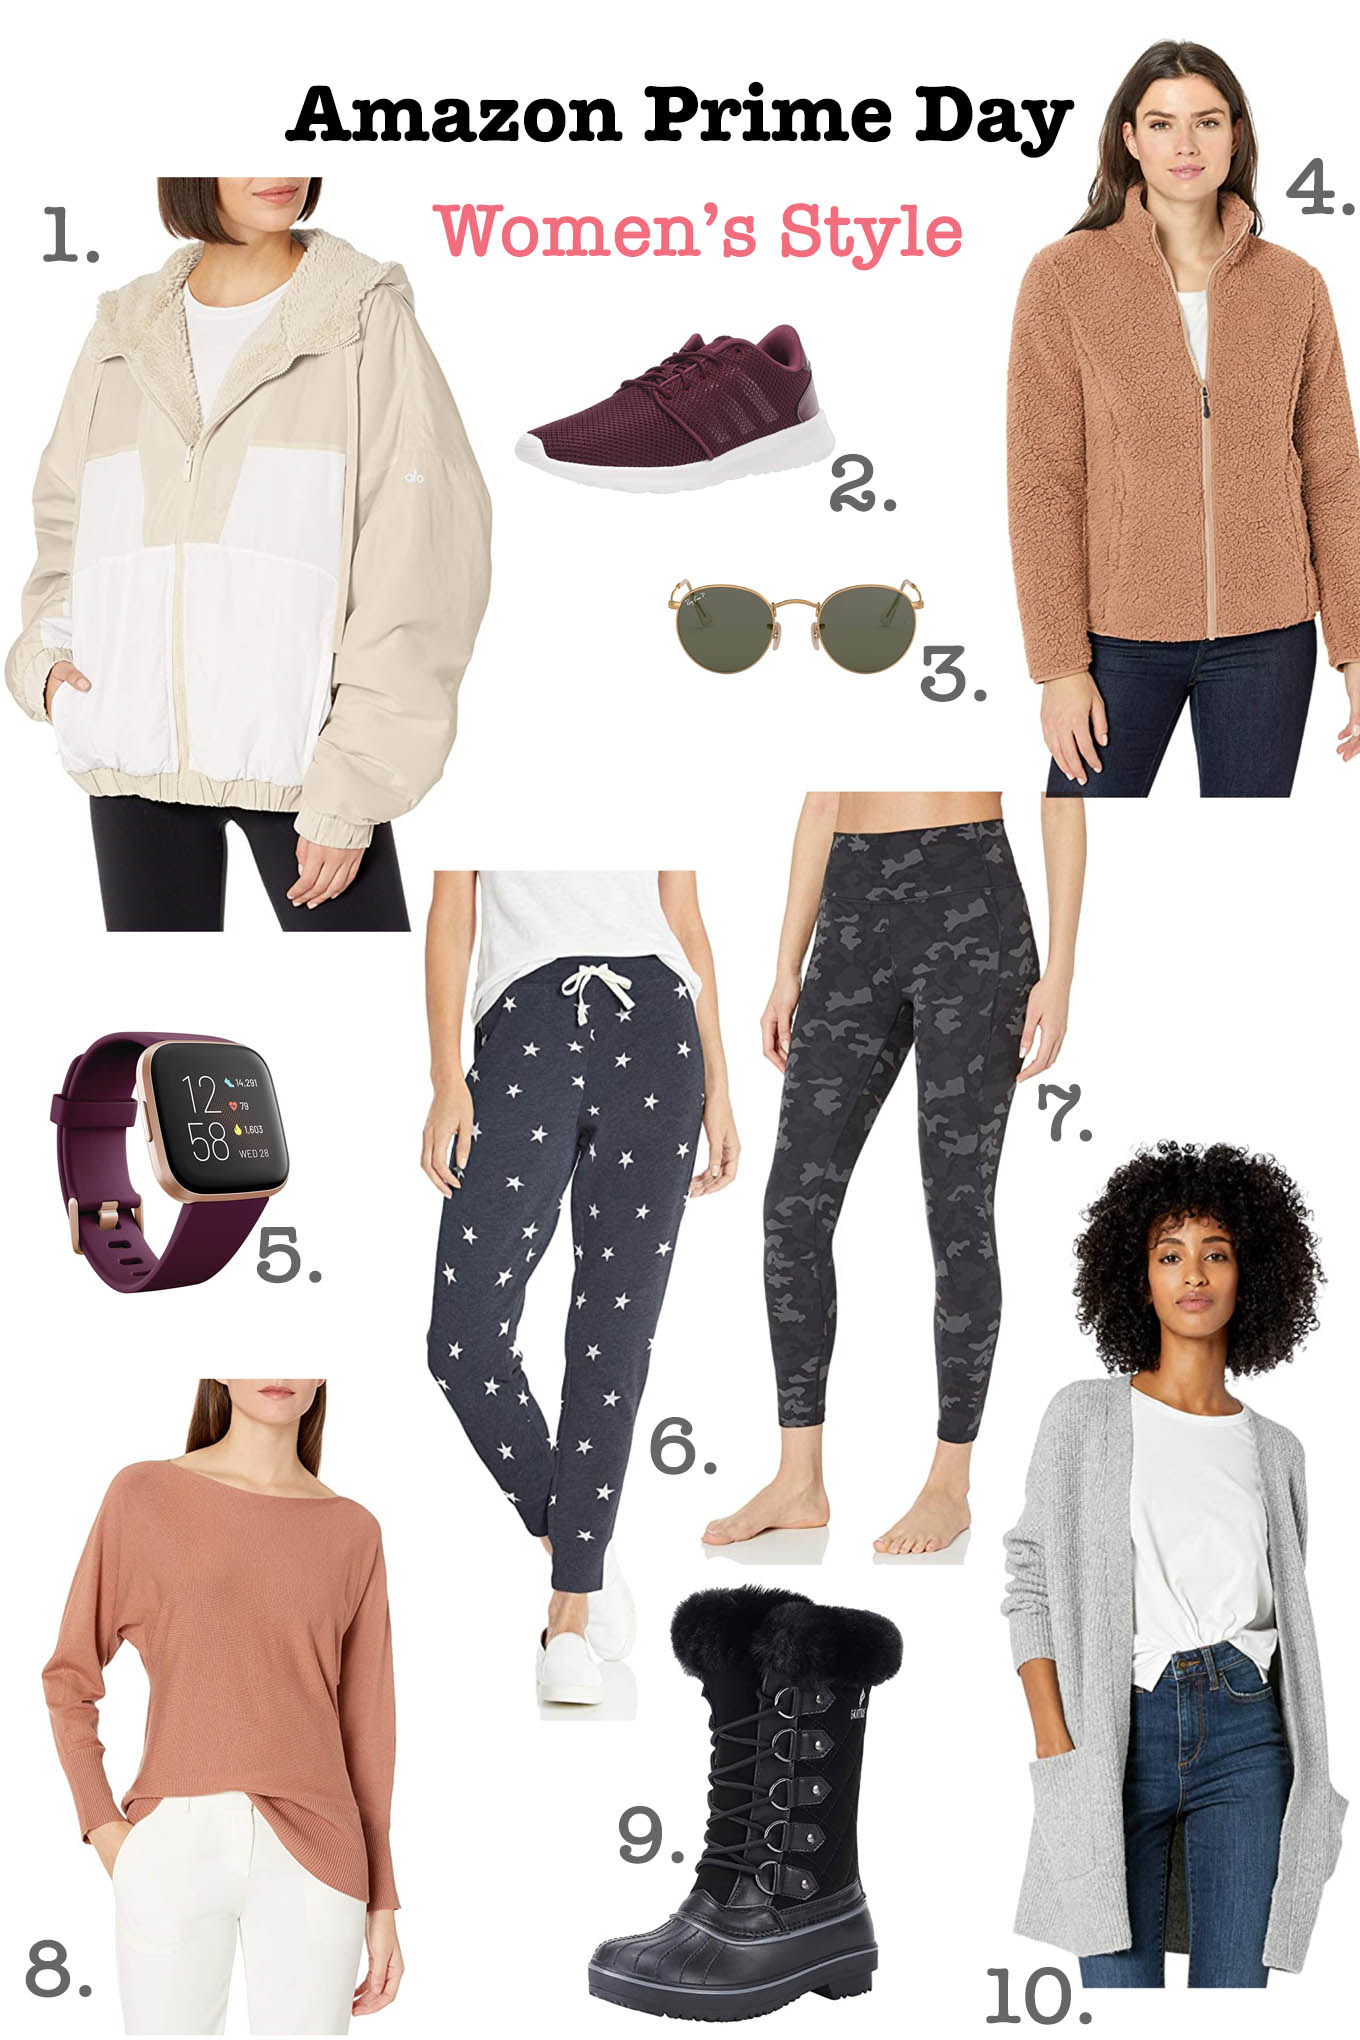 Prime Day by popular Chicago life and style blog, Glass of Glam: collage image of a Alo Yoga Reversible Sherpa Jacket, Adidas Cloudfoam Shoes, RayBan Metal Round Sunglasses, Amazon Essentials Polar Fleece Lined Sherpa Jacket, Fitbit Versa, Amazon Essentials French Terry Joggers, Core10 High Waist Leggings, Lark & Ro Long Sleeve Bateau Neck Sweater, Waterproof Winter Boots, Goodthreads Boucle Cardigan